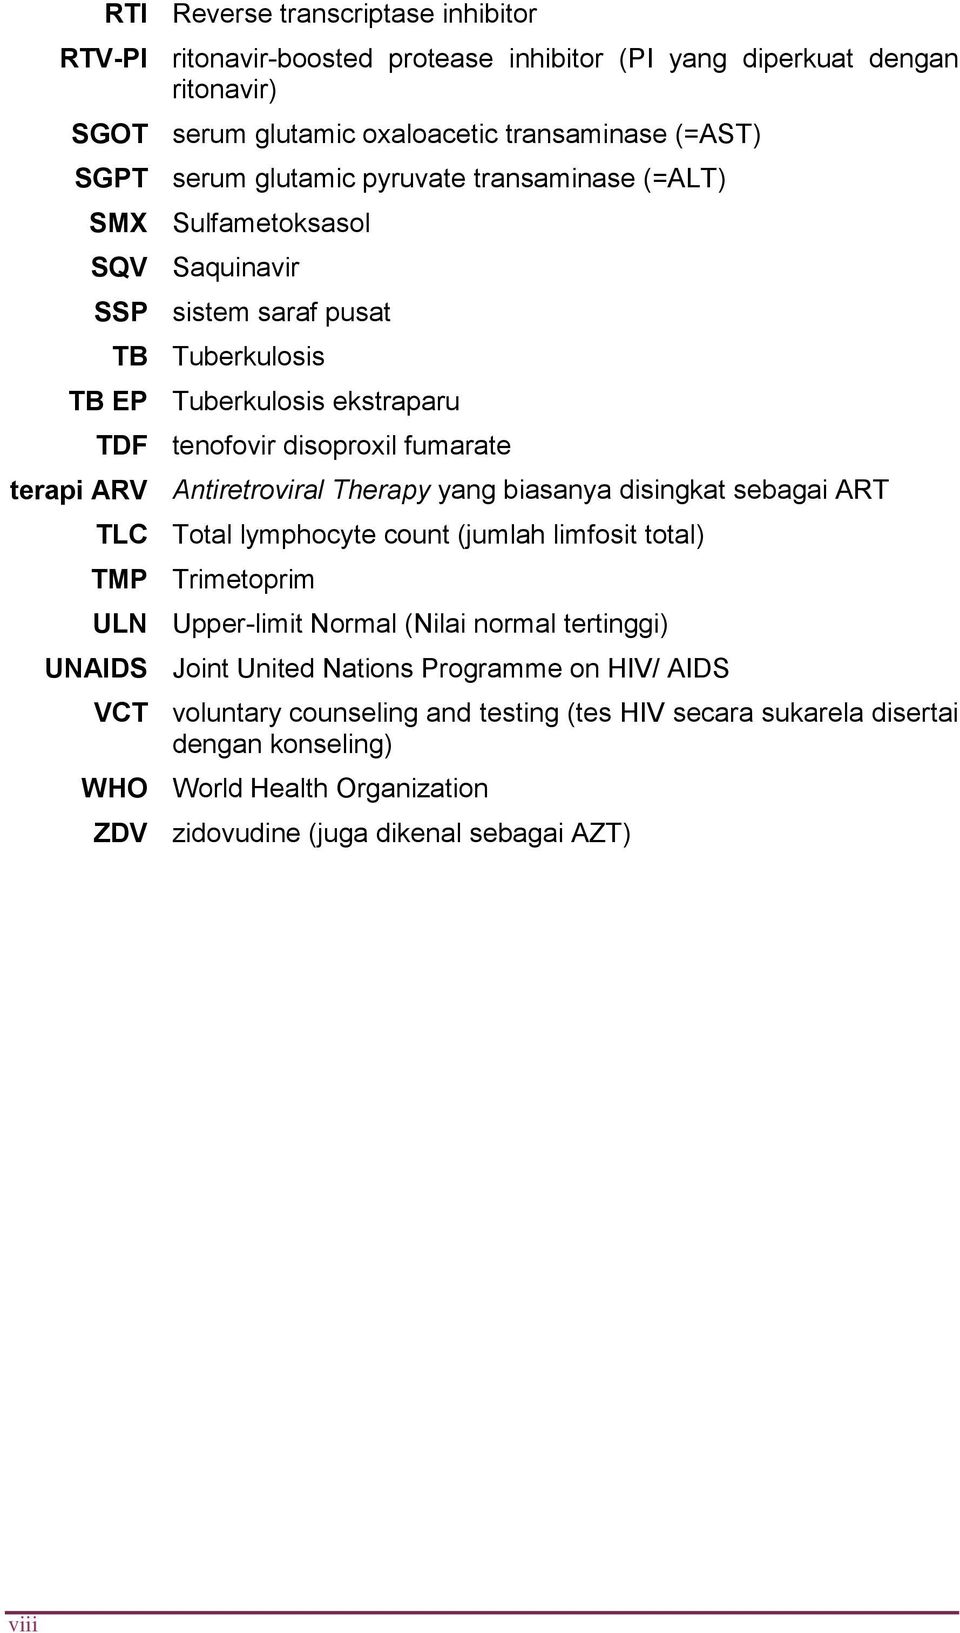 Antiretroviral Therapy yang biasanya disingkat sebagai ART TLC Total lymphocyte count (jumlah limfosit total) TMP Trimetoprim ULN Upper-limit Normal (Nilai normal tertinggi) UNAIDS Joint